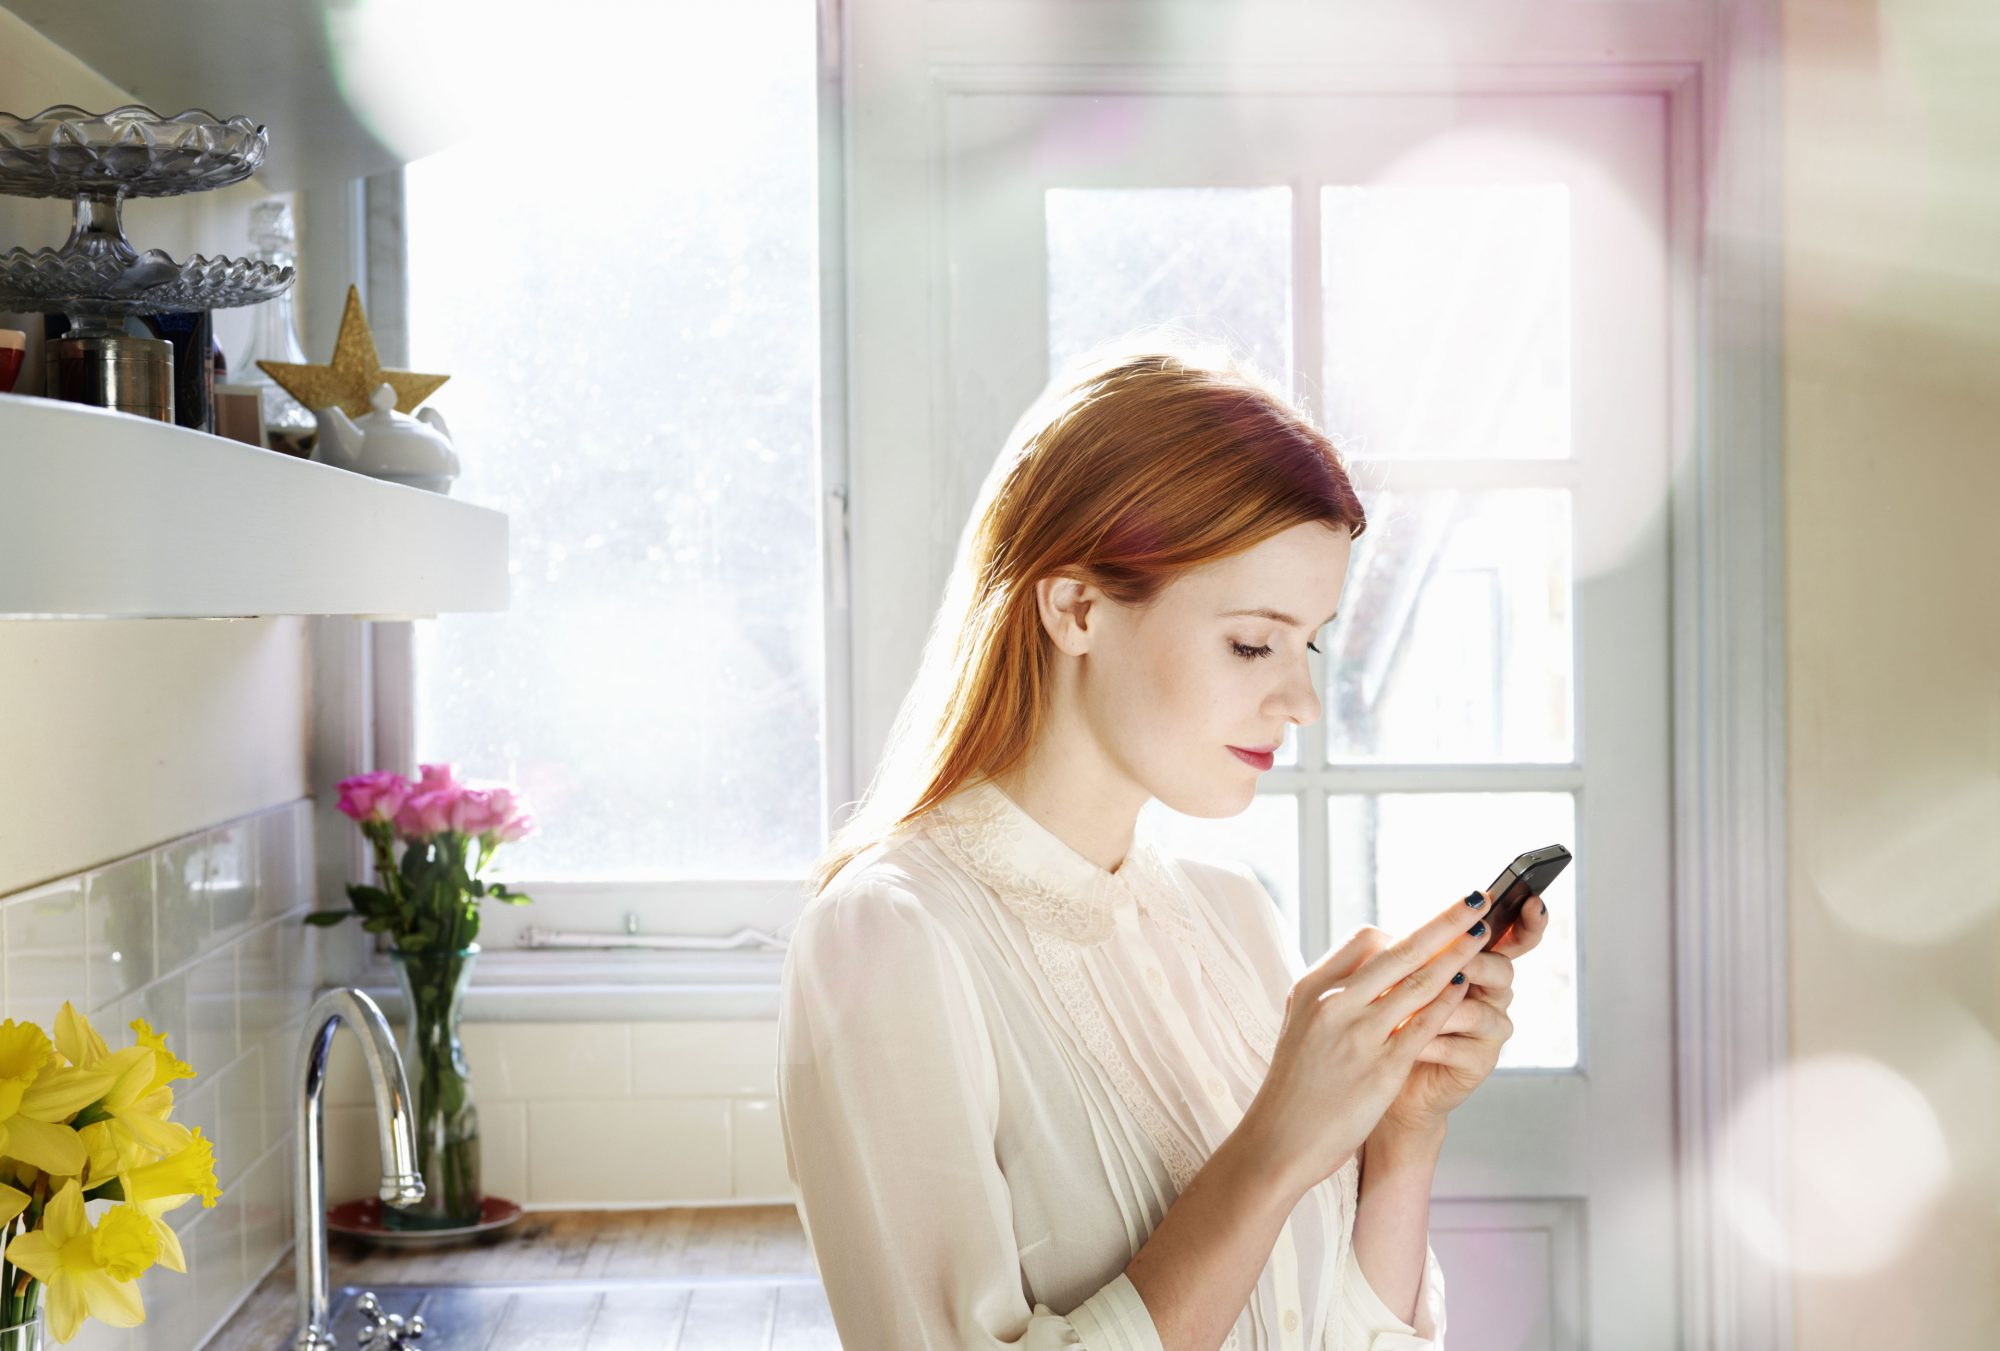 Woman Reading Text Messages